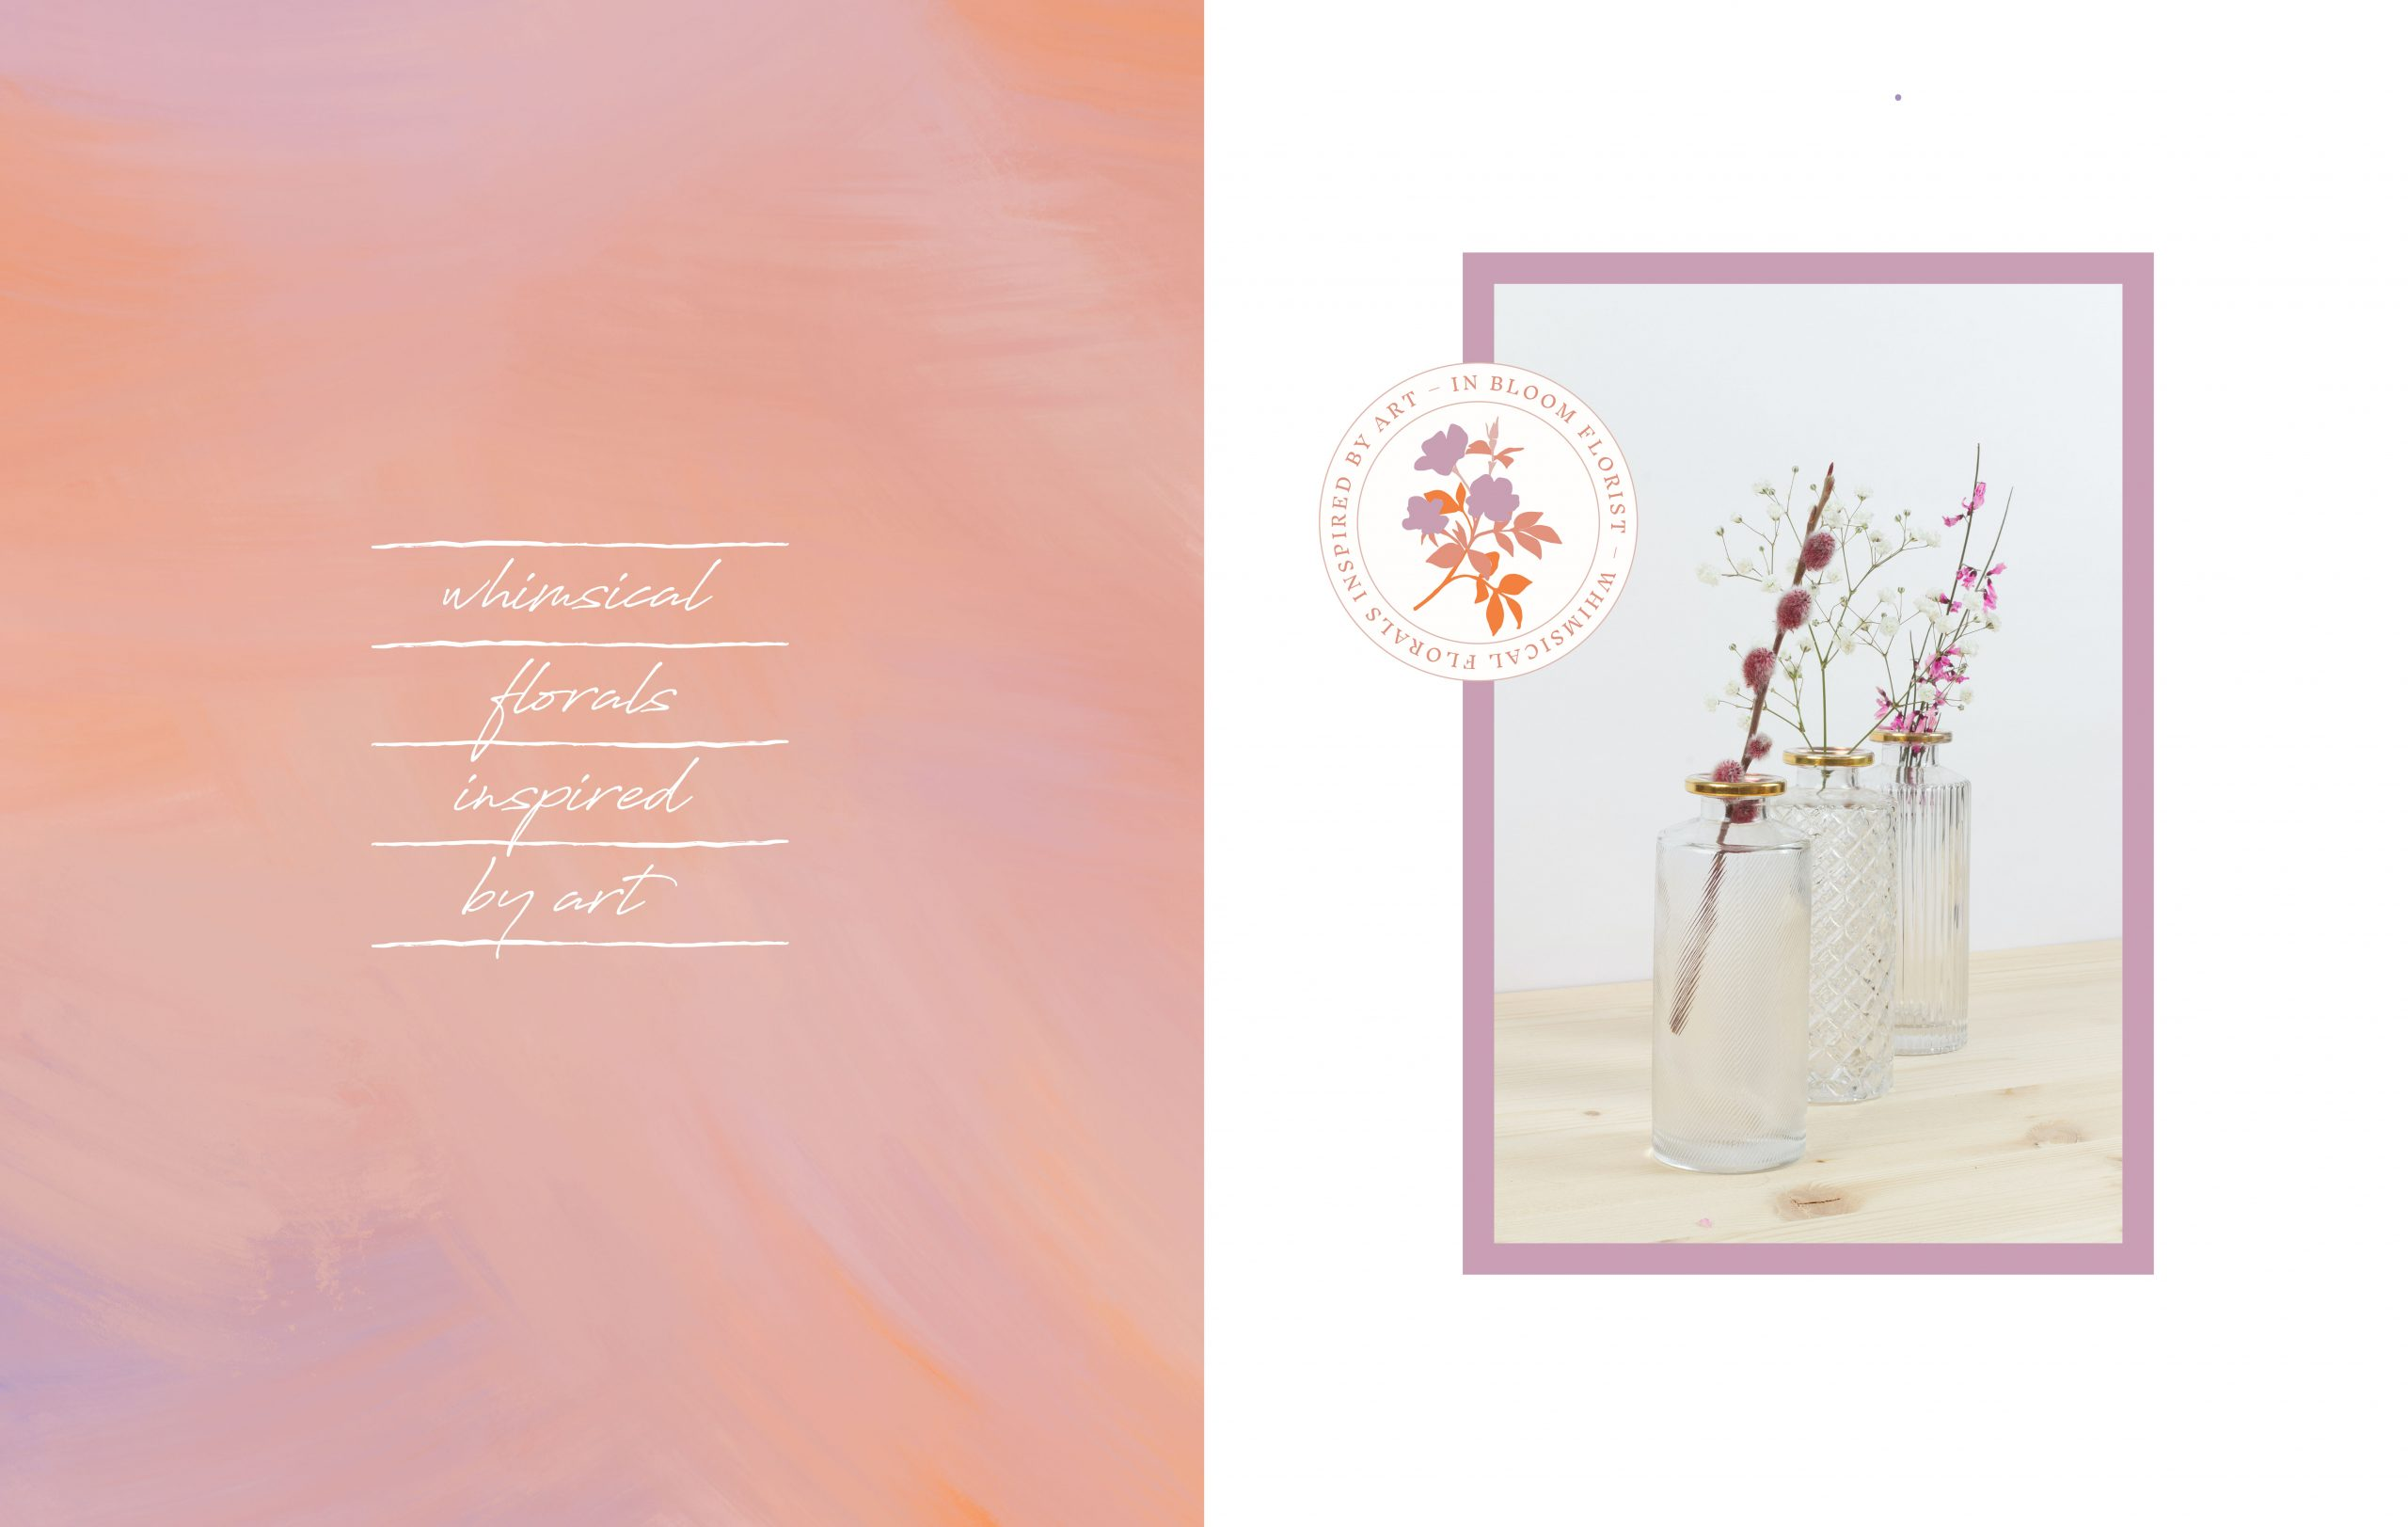 In Bloom logo and tagline